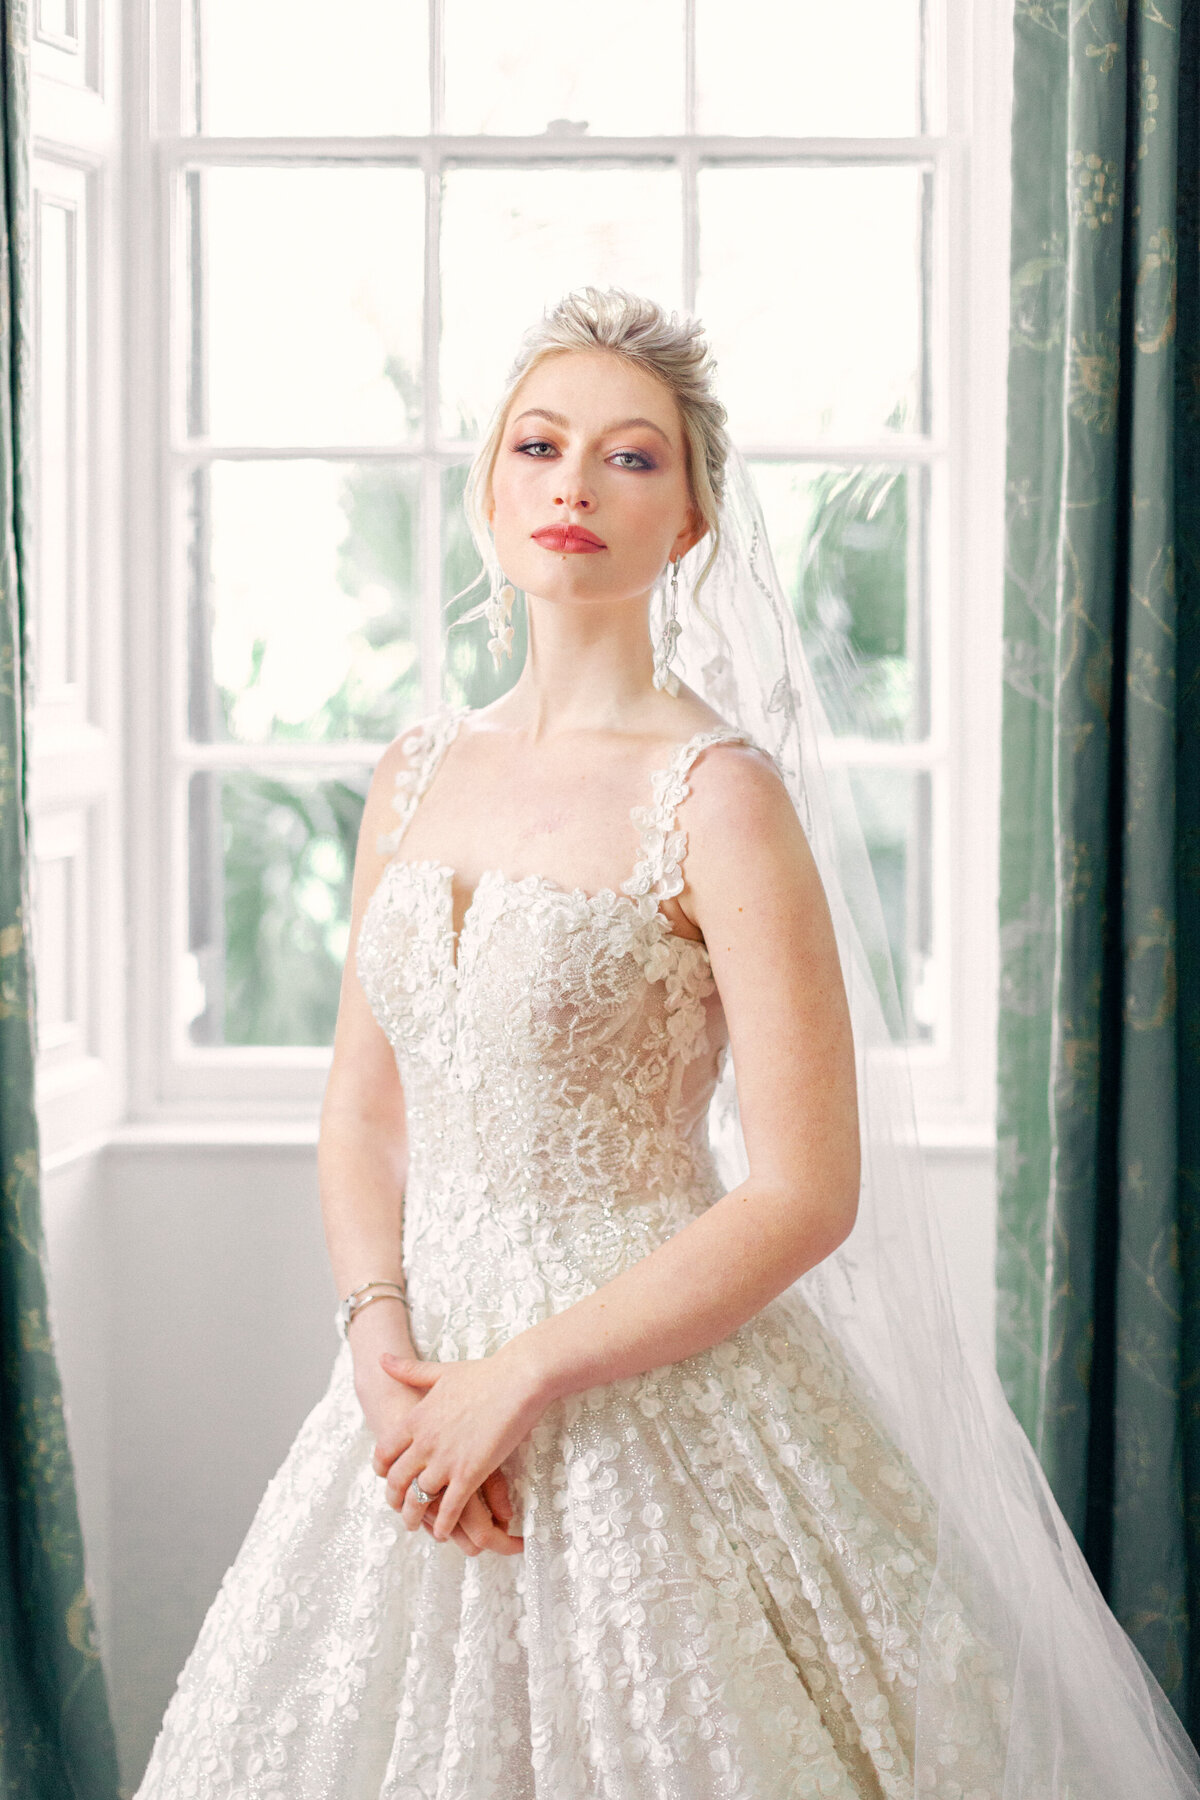 Bride in white lace wedding dress standing at window with green curtains at Lowndes Grove Charleston